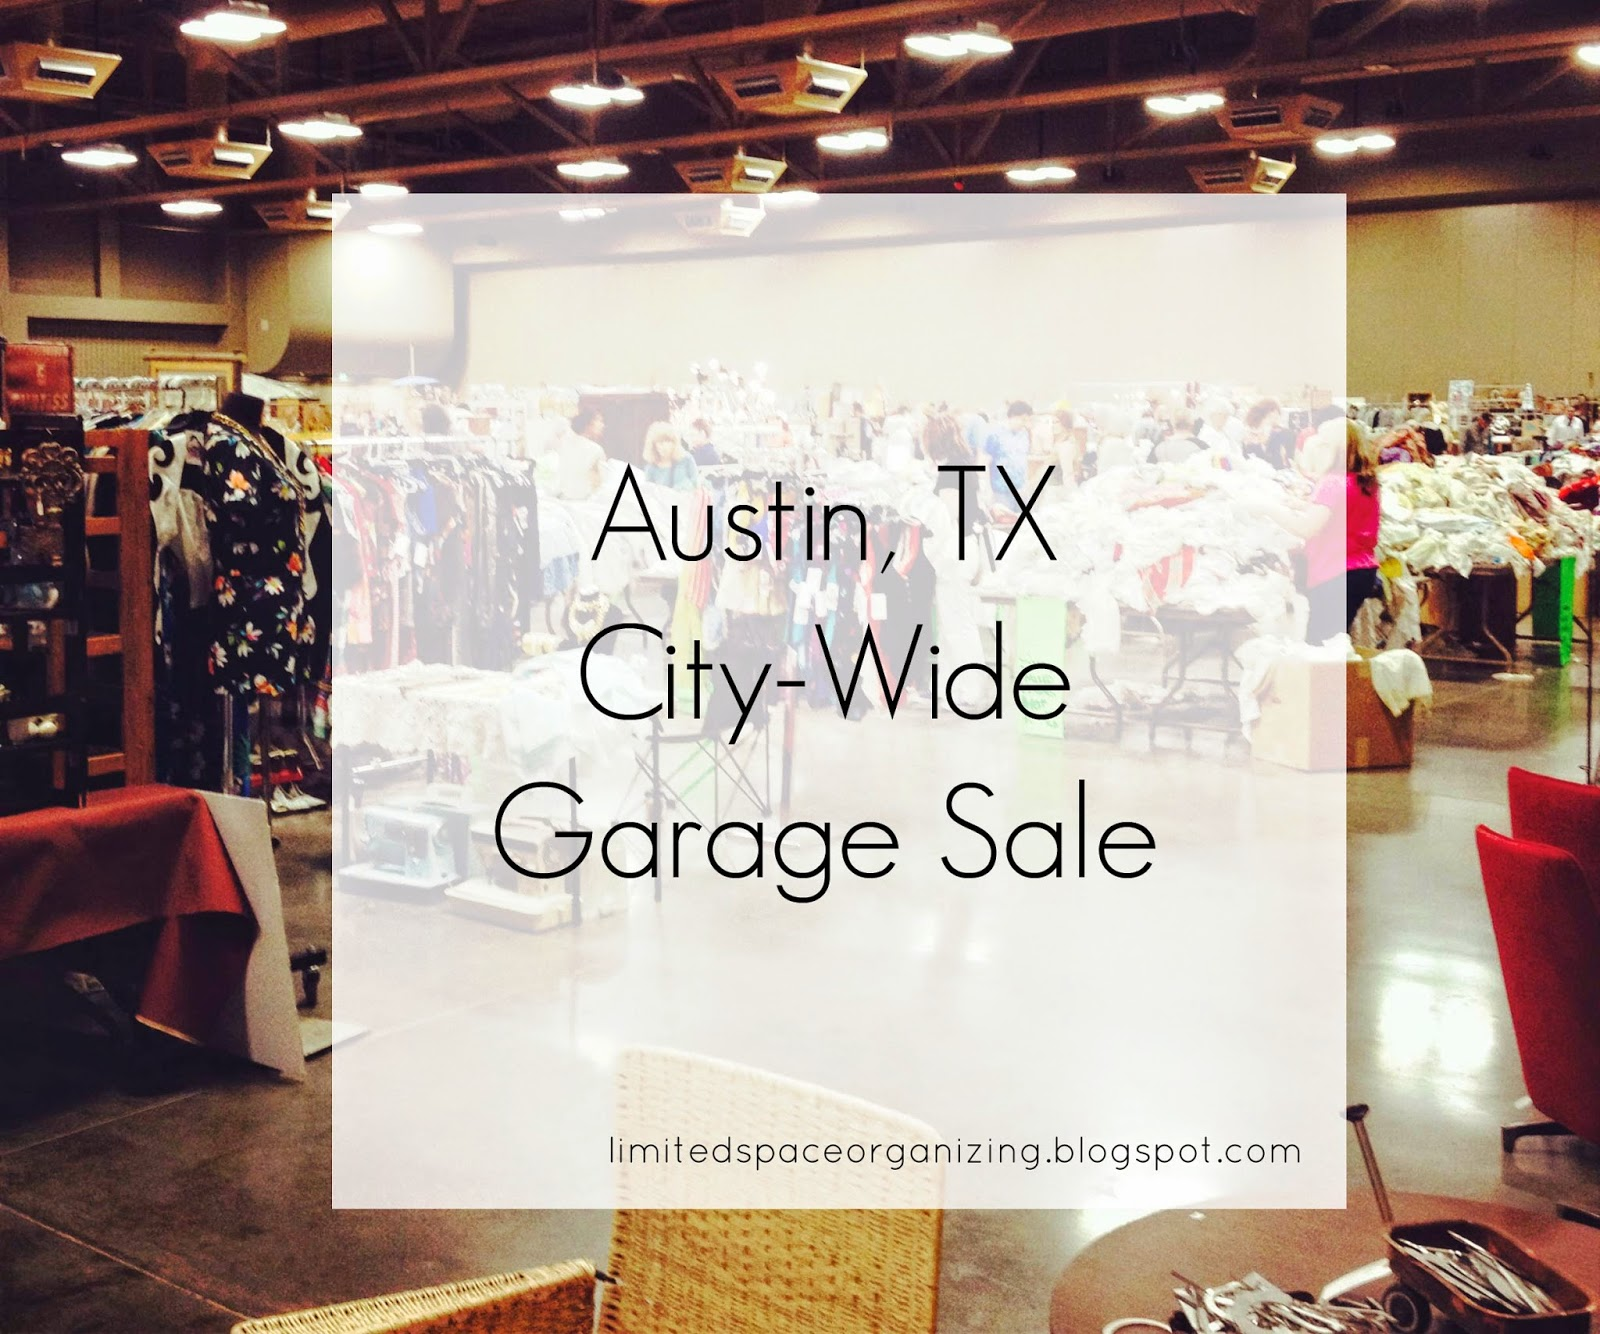 Limited space organizing: austin, tx city wide garage sale